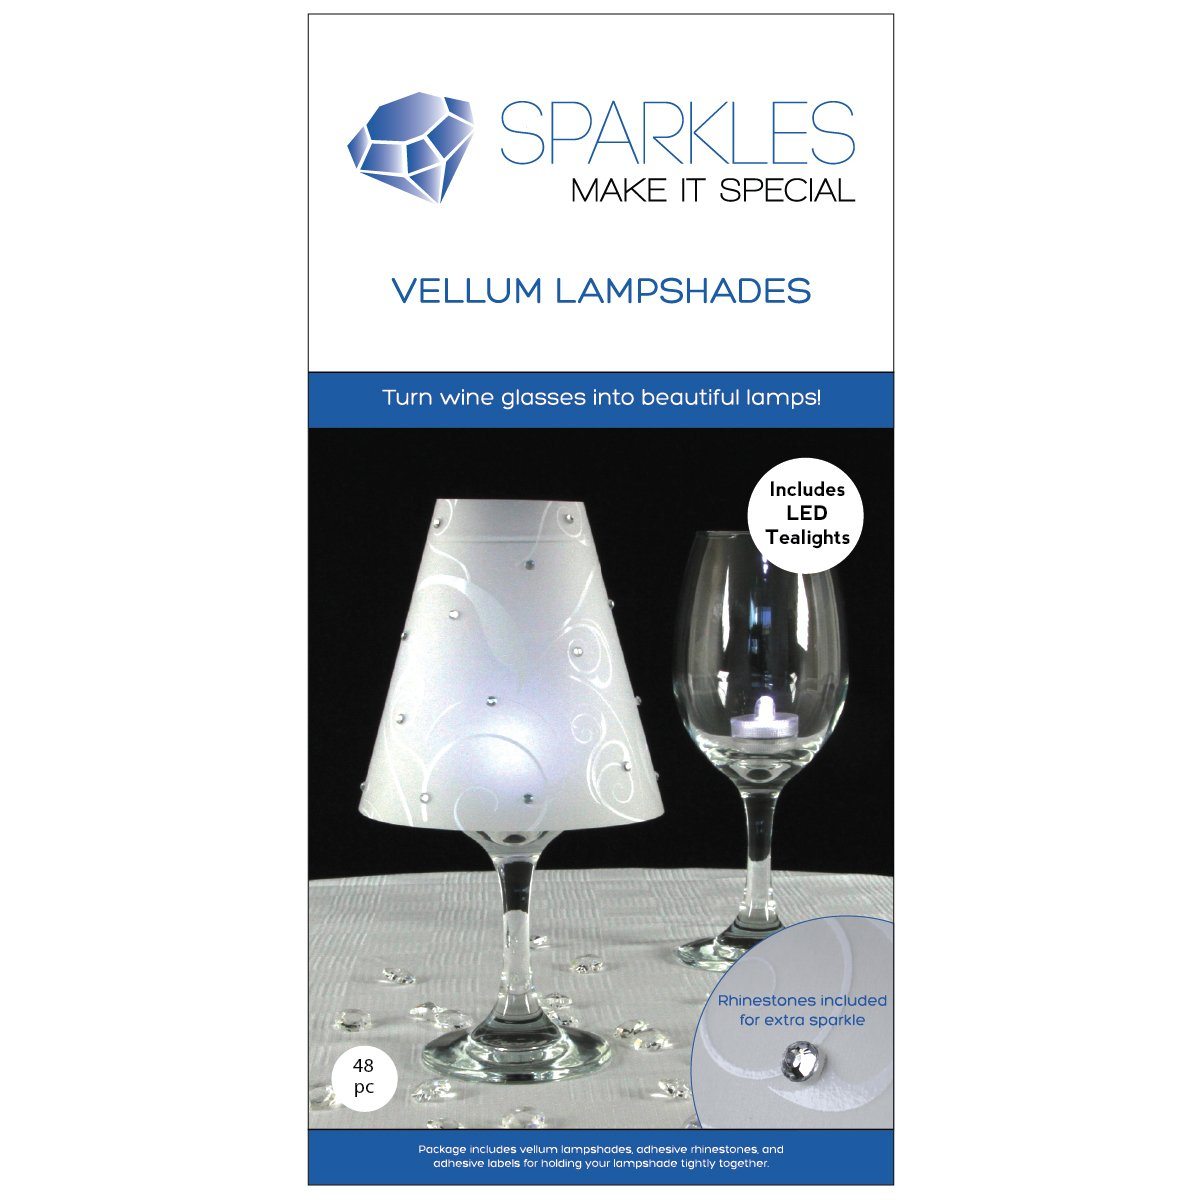 Sparkles Make It Special 48 pc Wine Glass Lamp Shades with Rhinestones and LED Tea Lights - Wedding Table Decoration - White Vellum Swirl Print